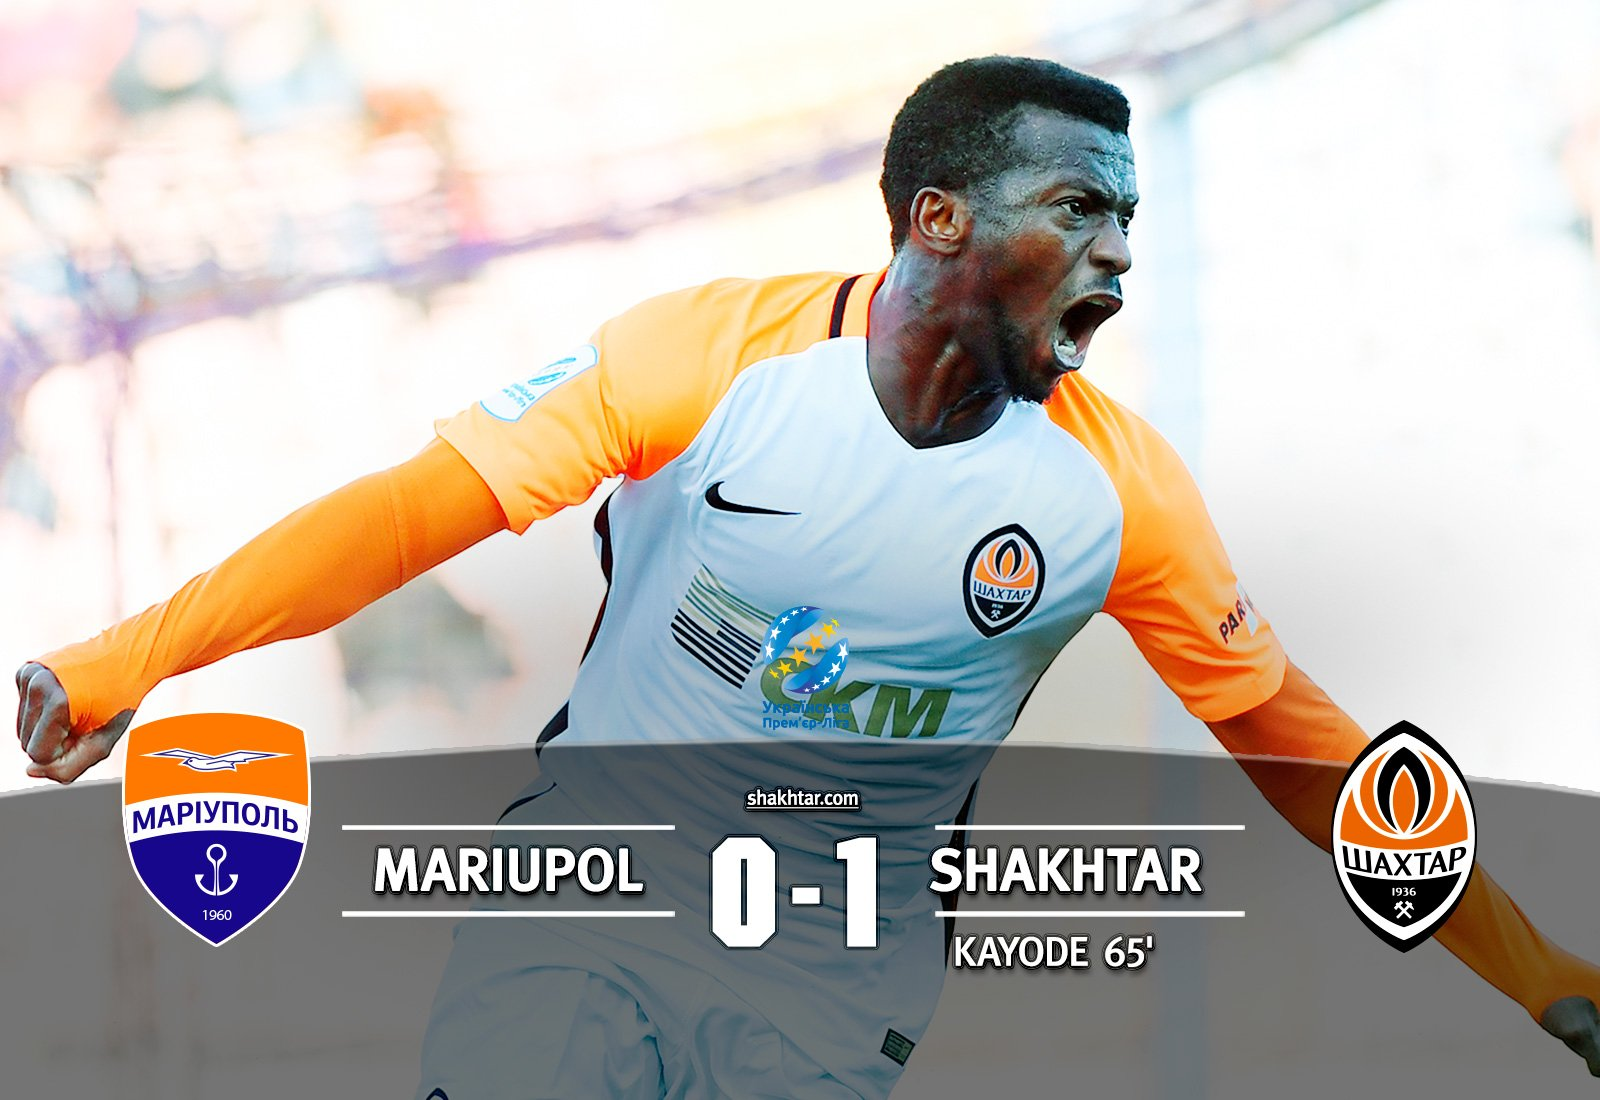 Kayode: Shakhtar Deserved The Hard-Fought 1-0 Away Win At Mariupol